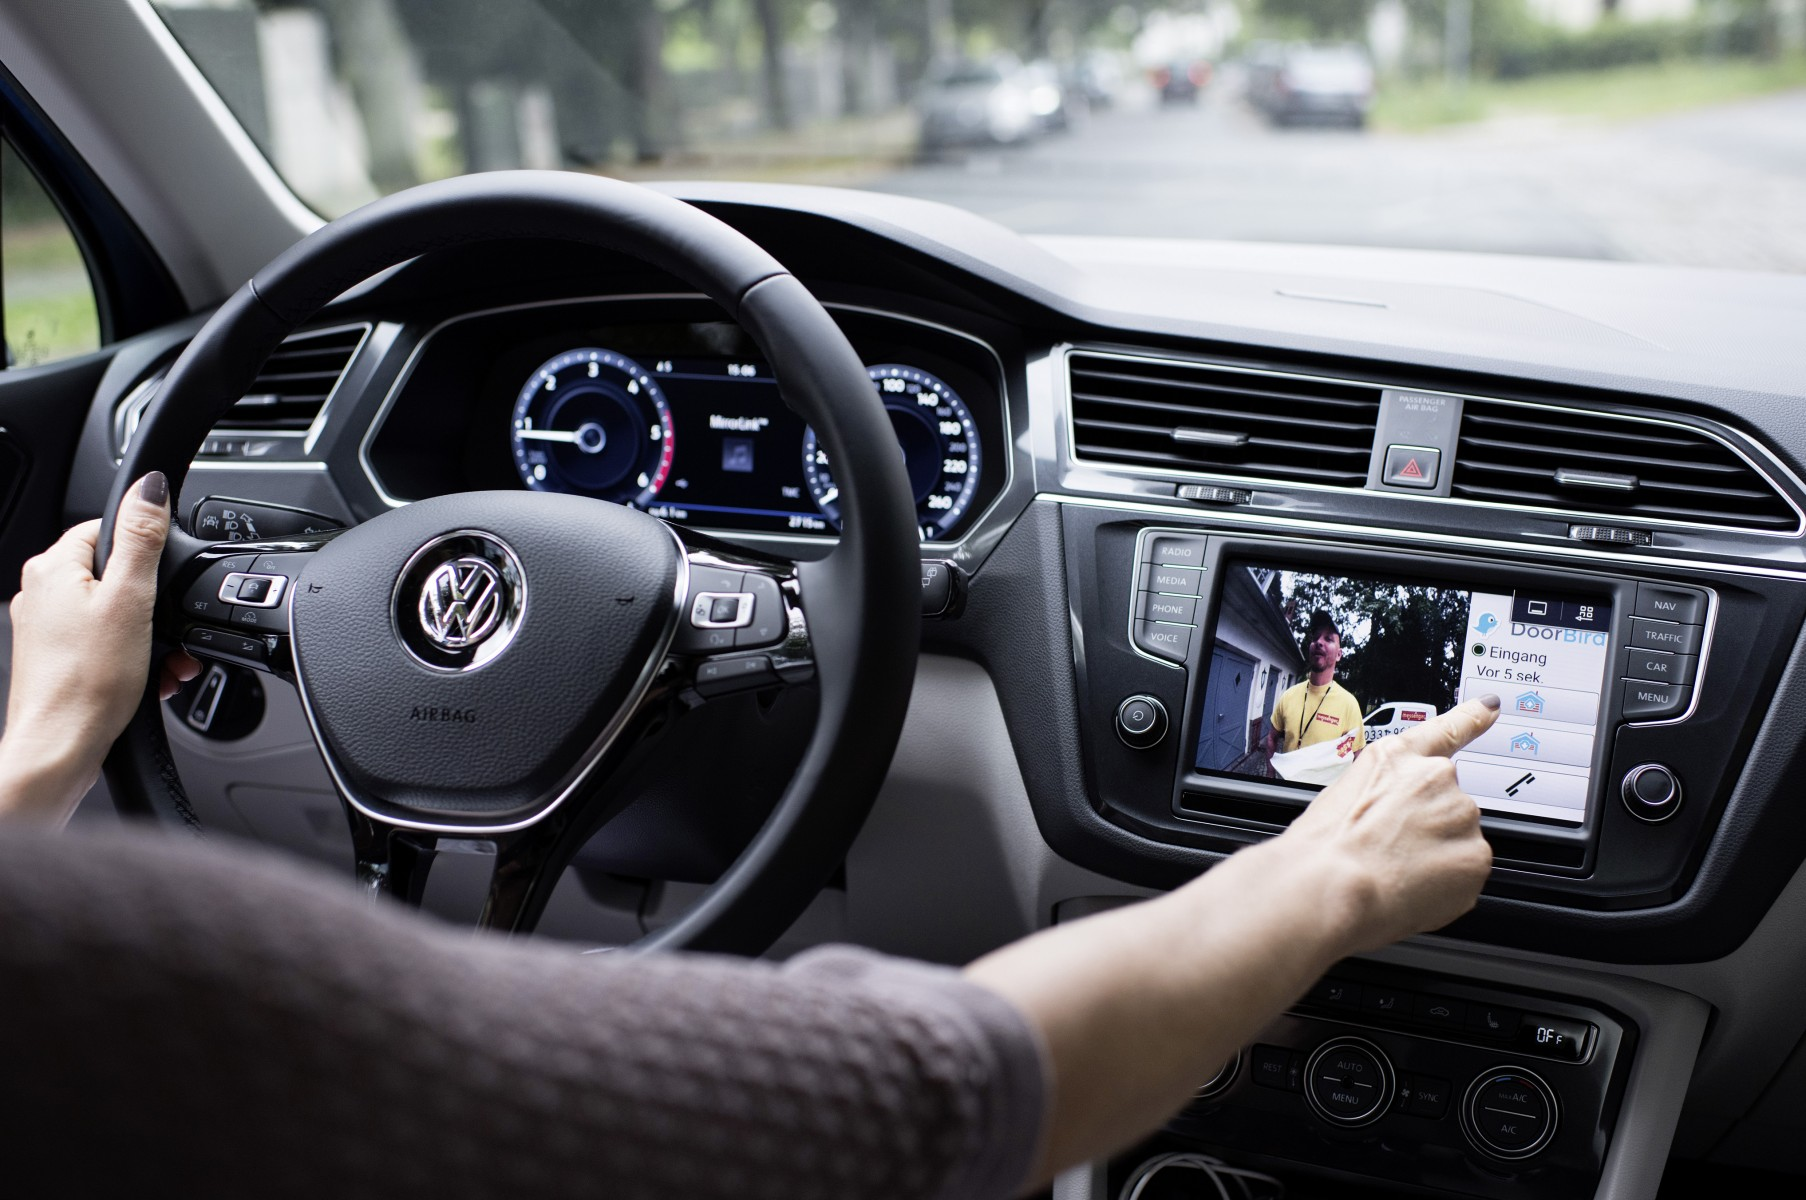 Volkswagen Car-Net App Connect